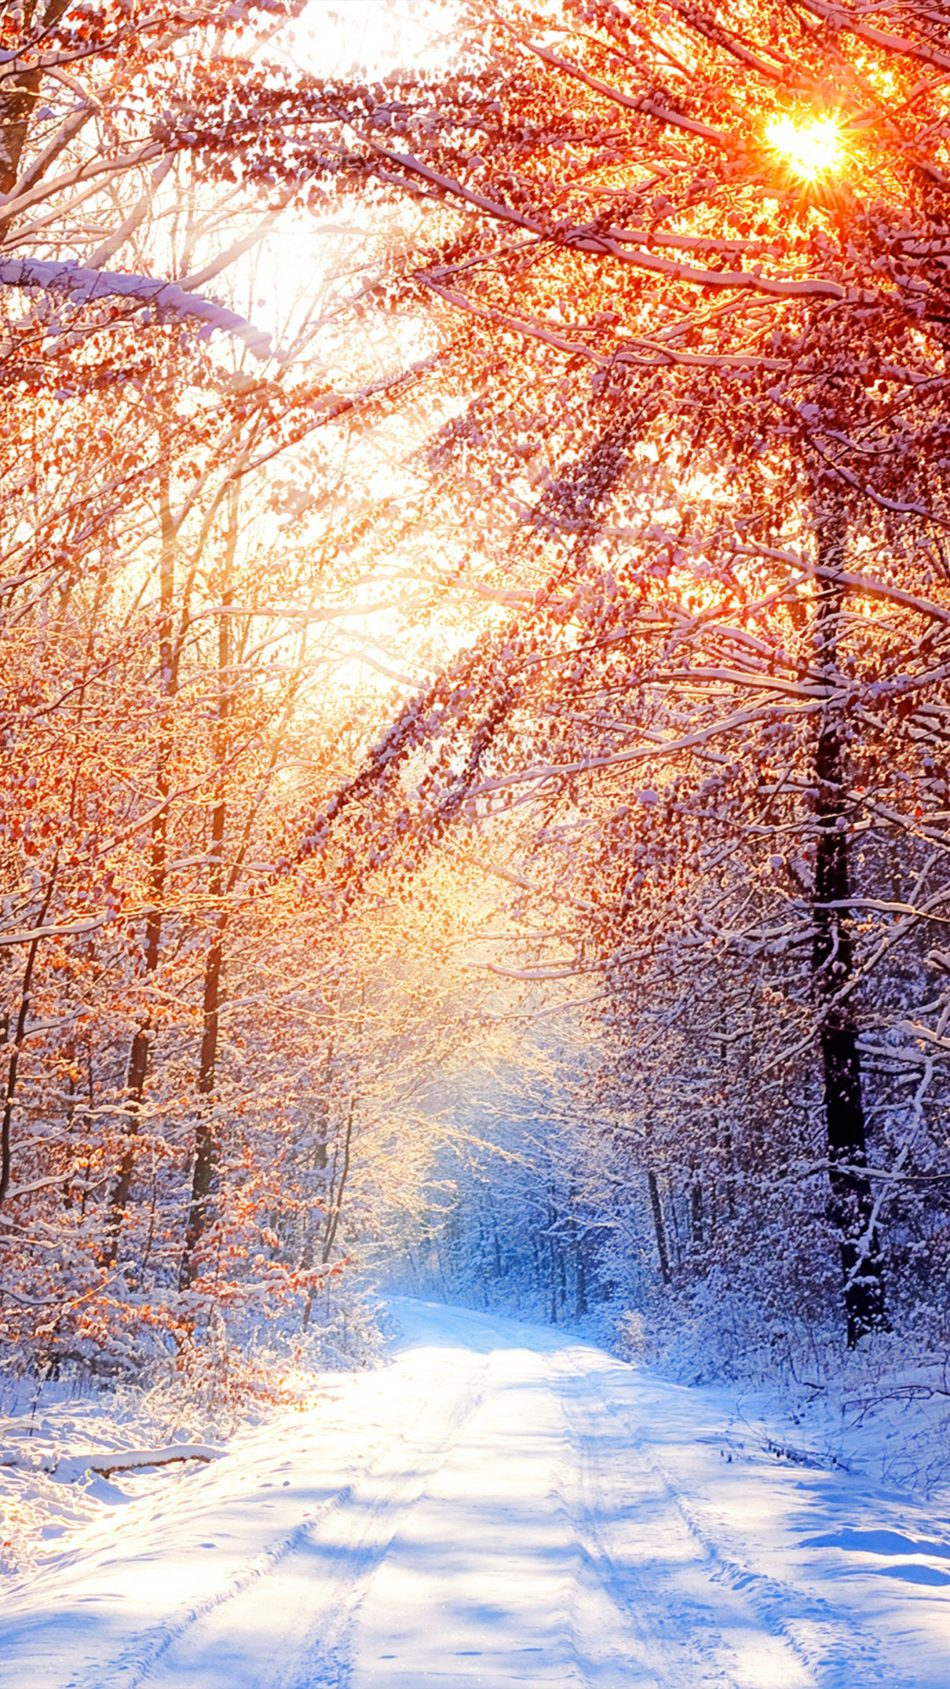 Snow Trees Winter Morning 4K Ultra HD Mobile Wallpaper